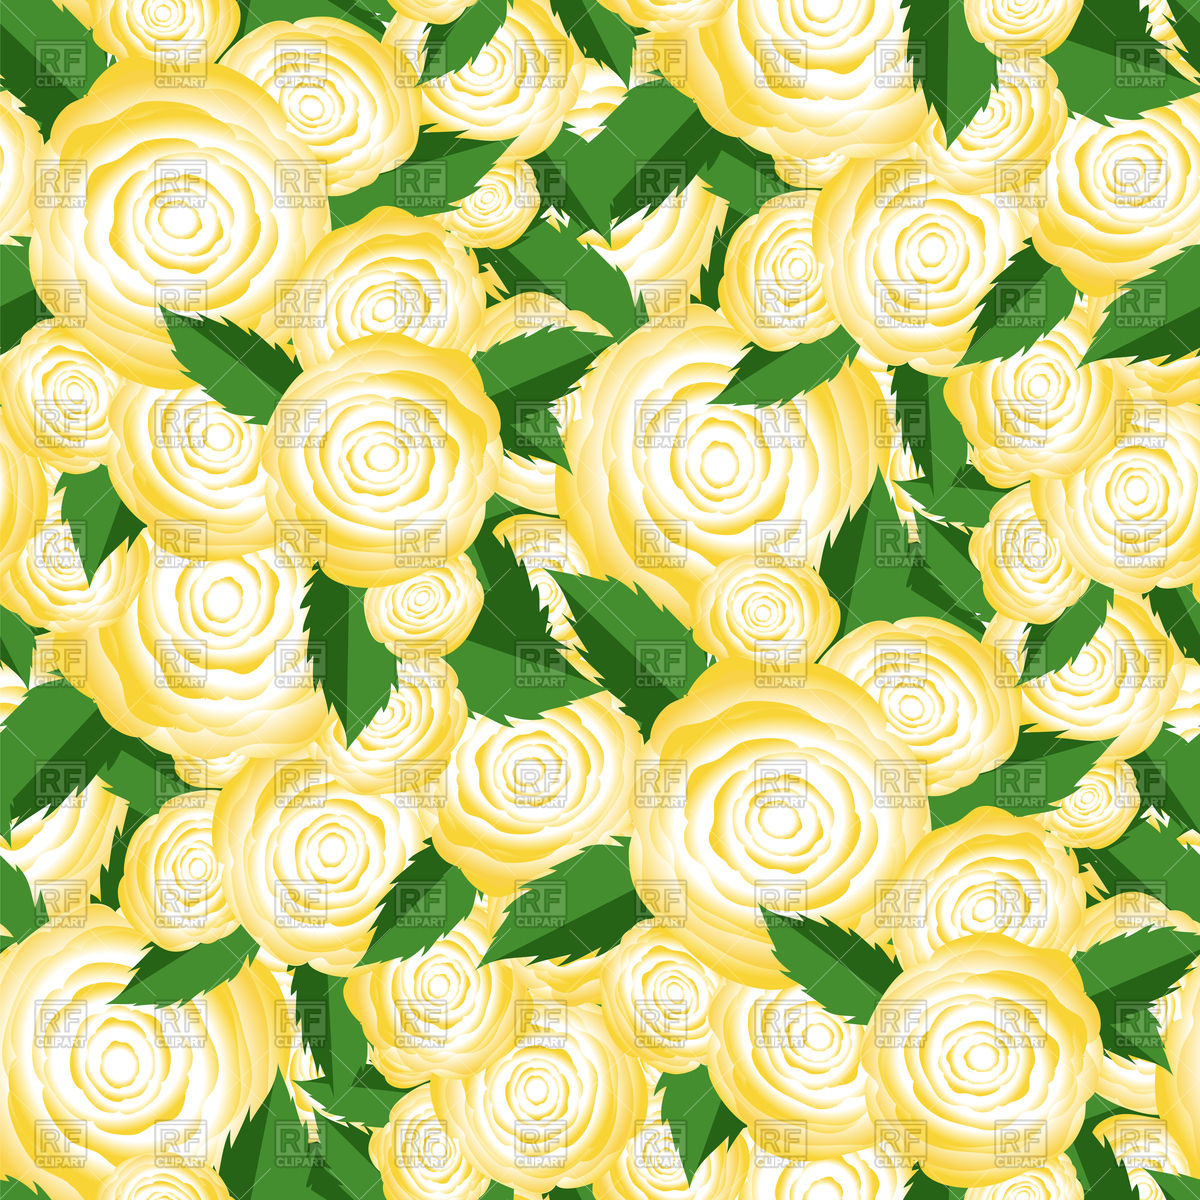 1200x1200 Bouquet Of Yellow Roses Random Seamless Pattern Vector Image